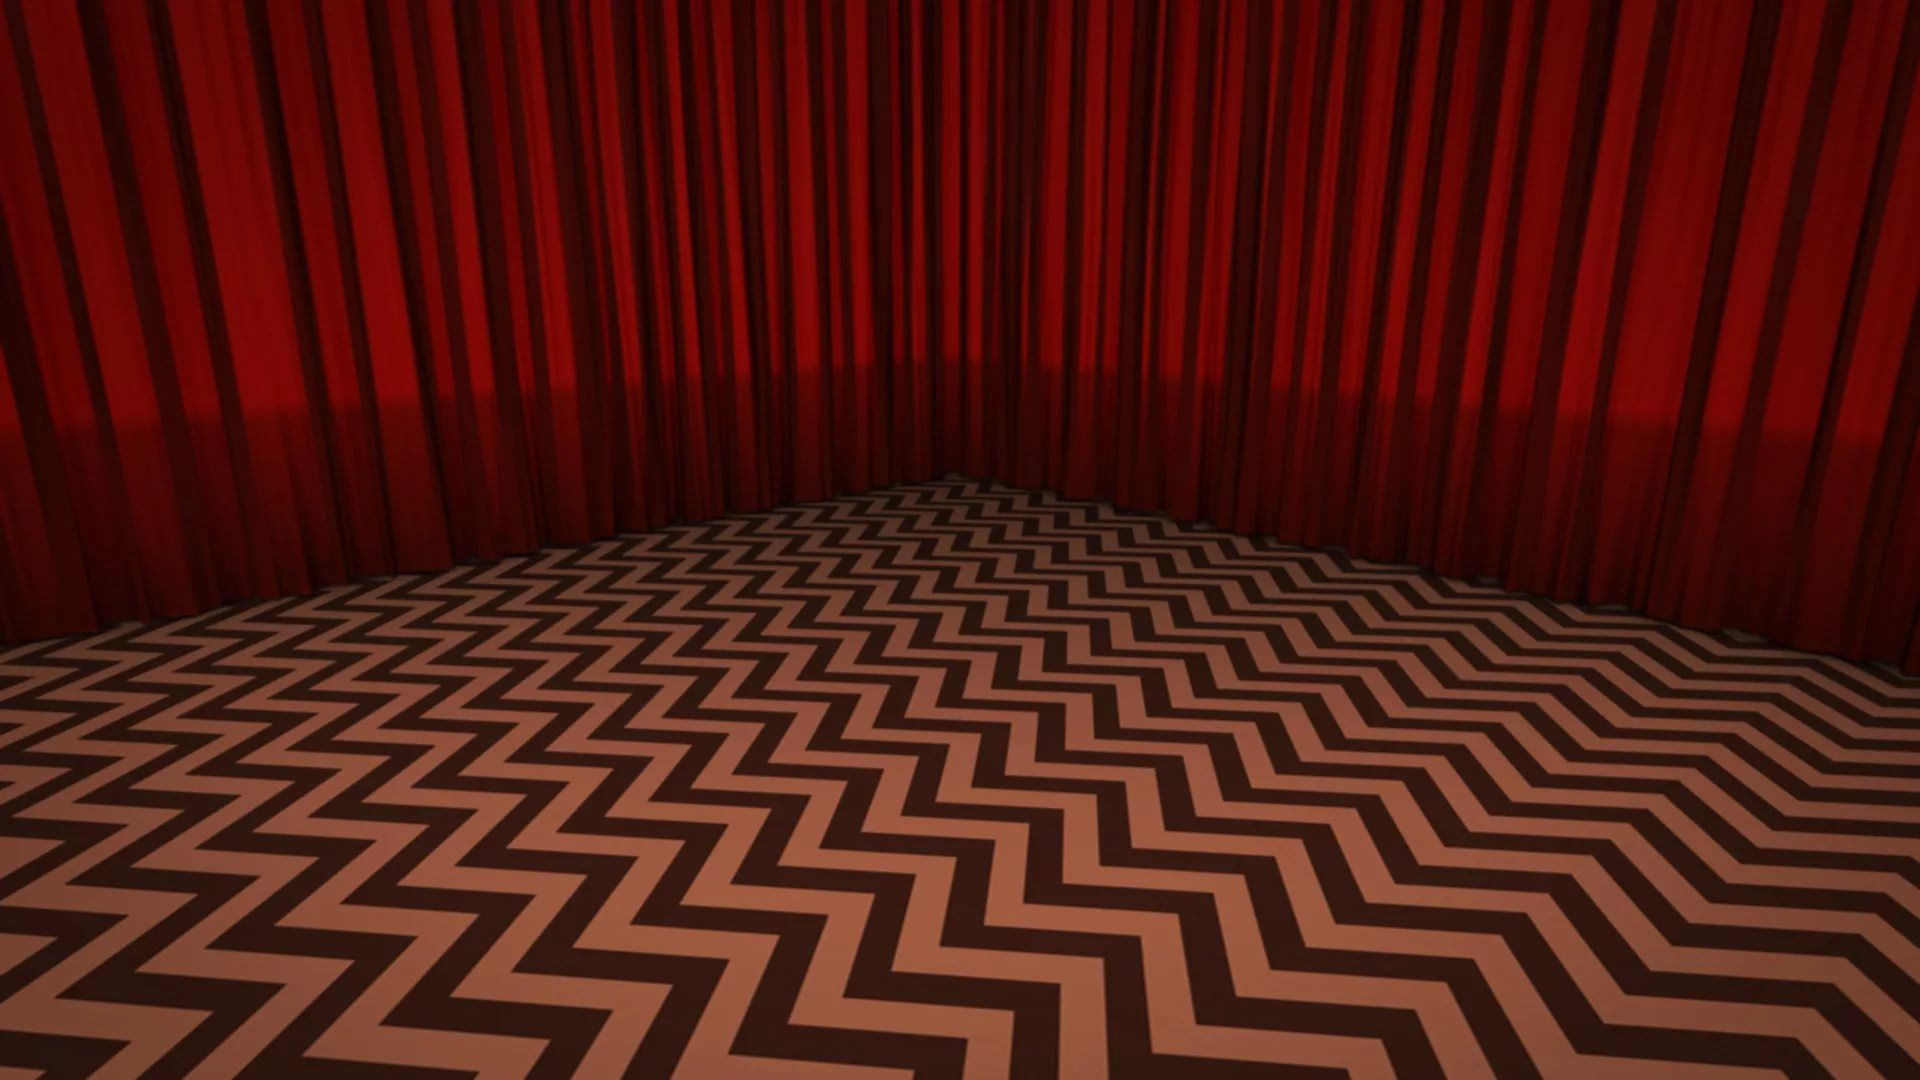 Abstract twin peaks wallpaper Backgrounddecoration